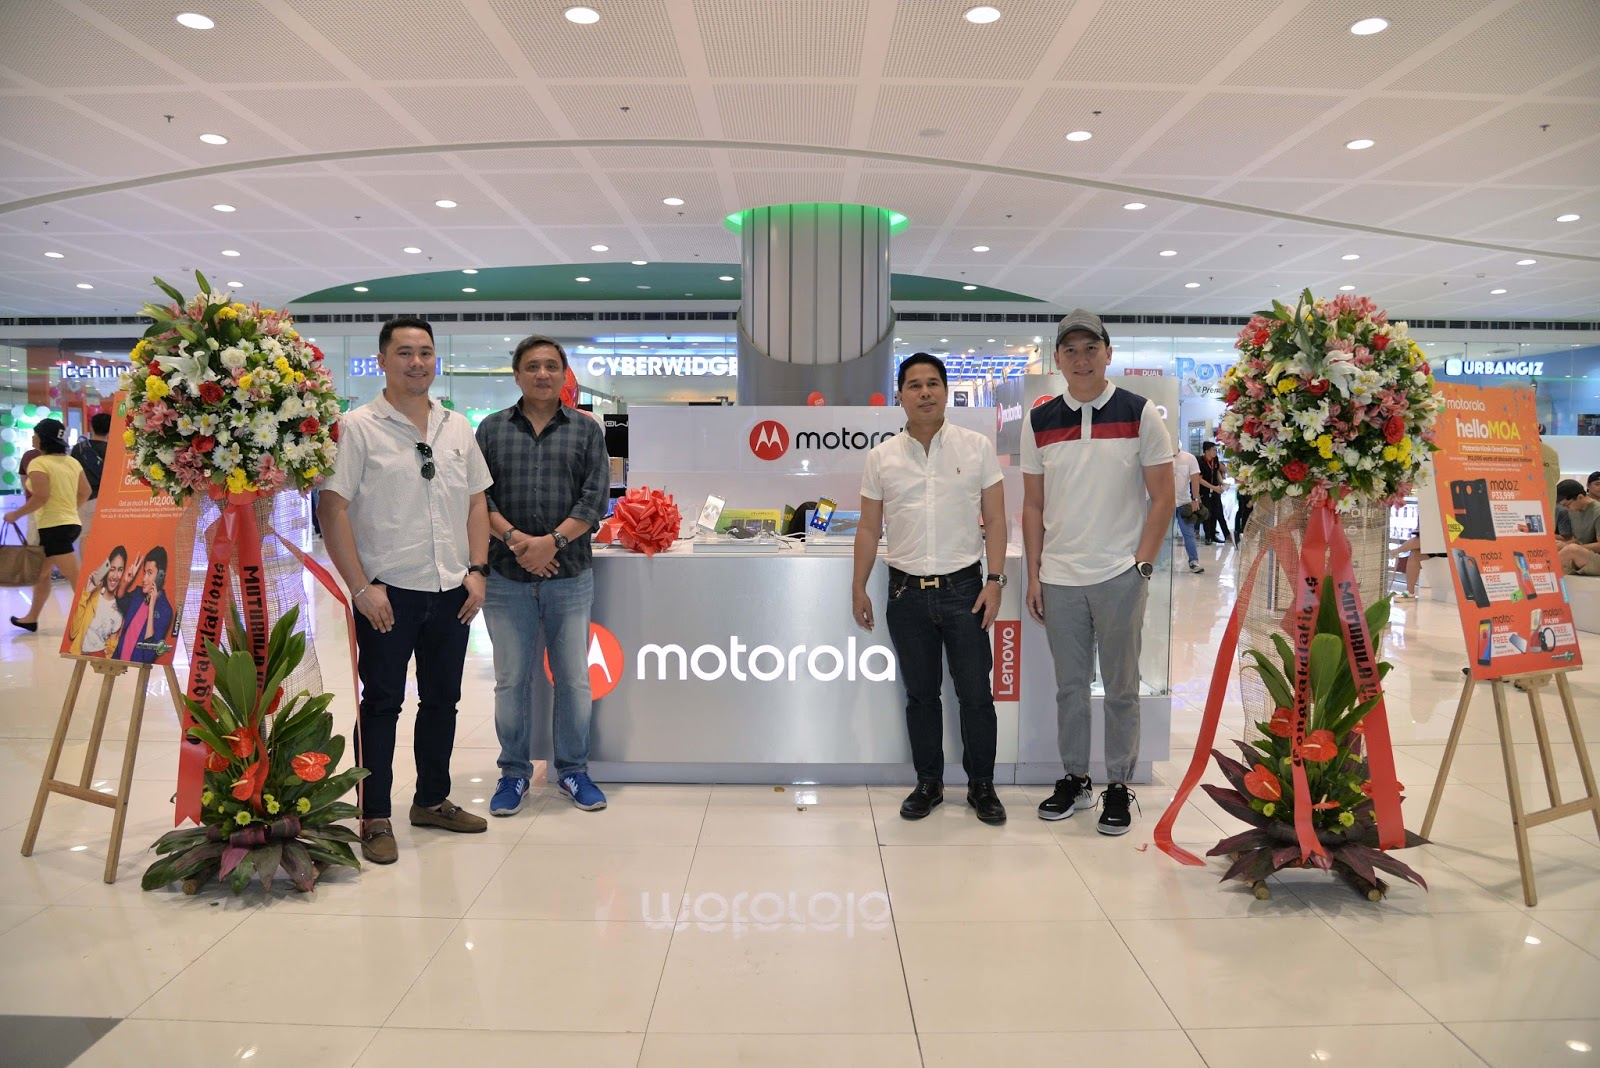 Motorola opens its new Motorola kiosk at SM MOA Cyberzone to better serve Filipino consumers in Southern Metro.